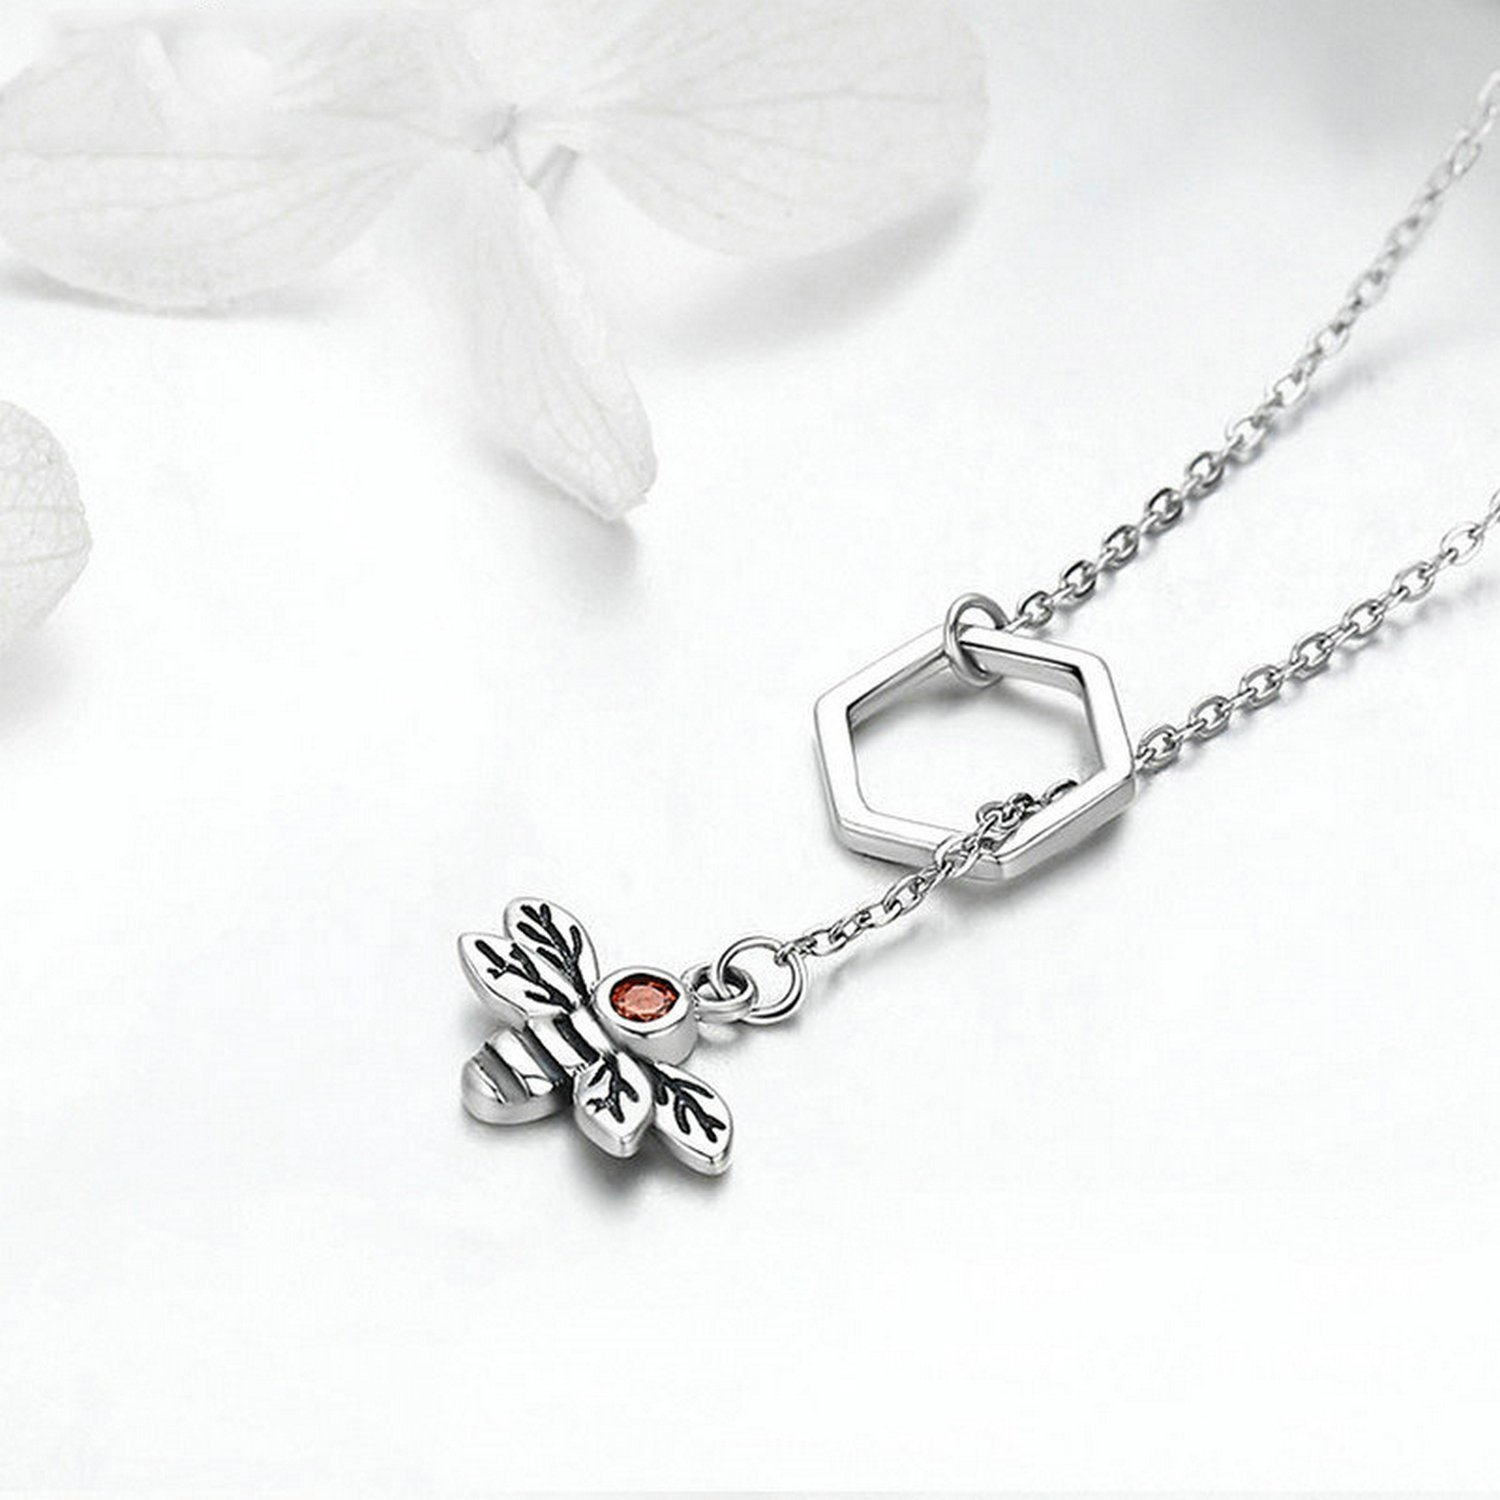 CS-DB Jewelry Silver Hand Chain Charm Pendants Necklaces